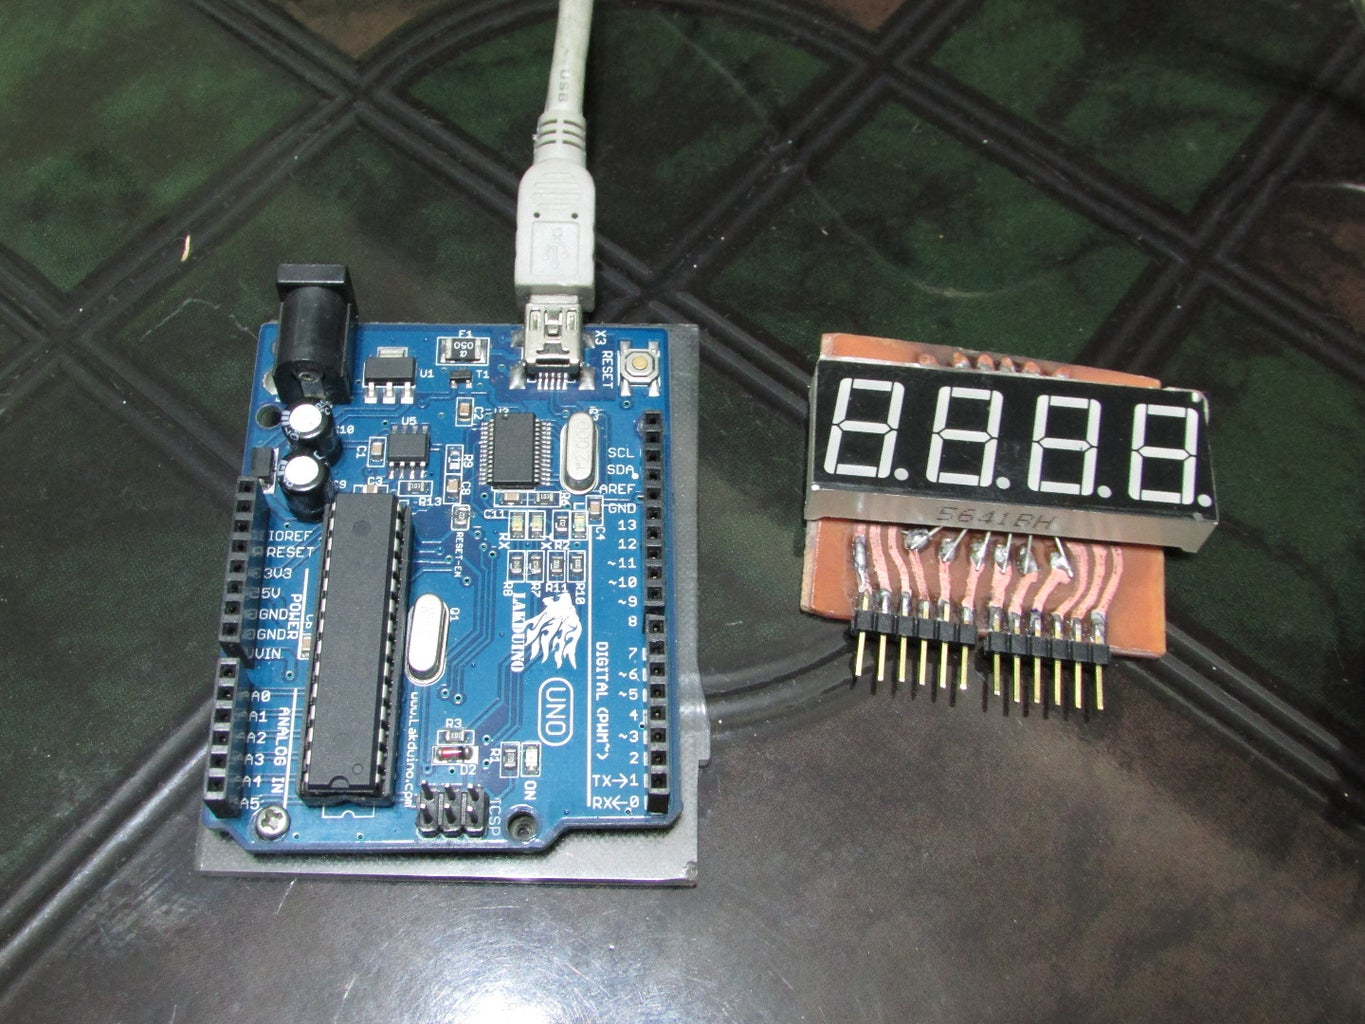 Conecting Components